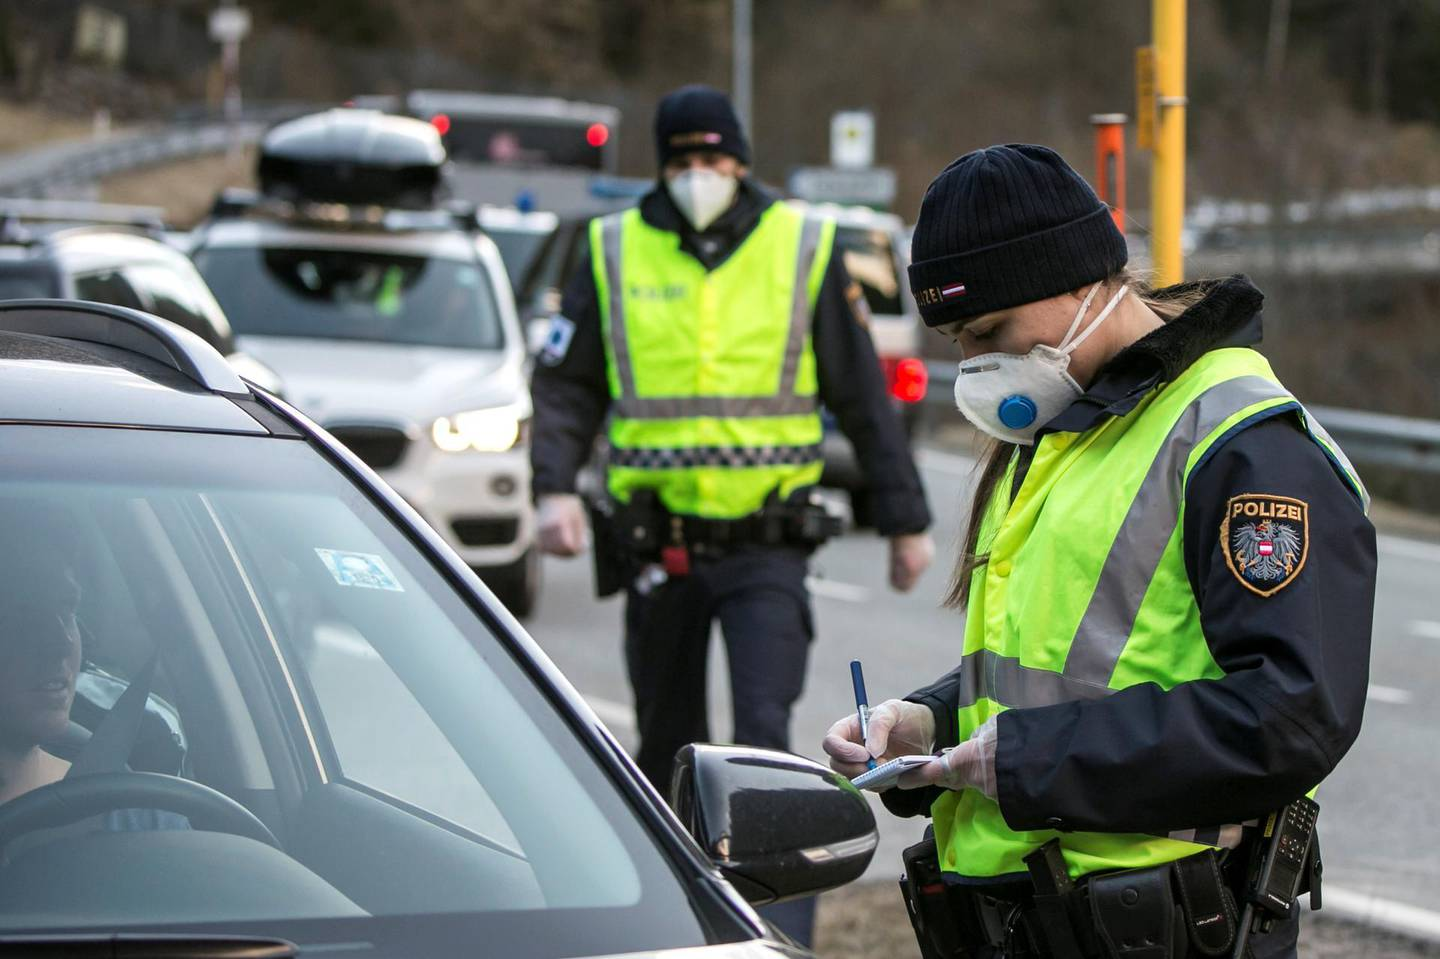 ISCHGL, AUSTRIA - MARCH 13: A police officer at a roadblock asks the driver of a car driving out of the Panznautal valley for a drive through permission following the imposition of a quarantine due to the coronavirus on March 14, 2020 near Ischgl, Austria. The ski resort towns of Sankt Anton and Ischgl are both under quarantine and many ski resorts in the region have been closed. The Austrian government is pursuing aggressive measures, including closing schools, cancelling events and shuttering shops except for grocery stores and pharmacies in an effort to slow the ongoing spread of the coronavirus. (Photo by Jan Hetfleisch/Getty Images)